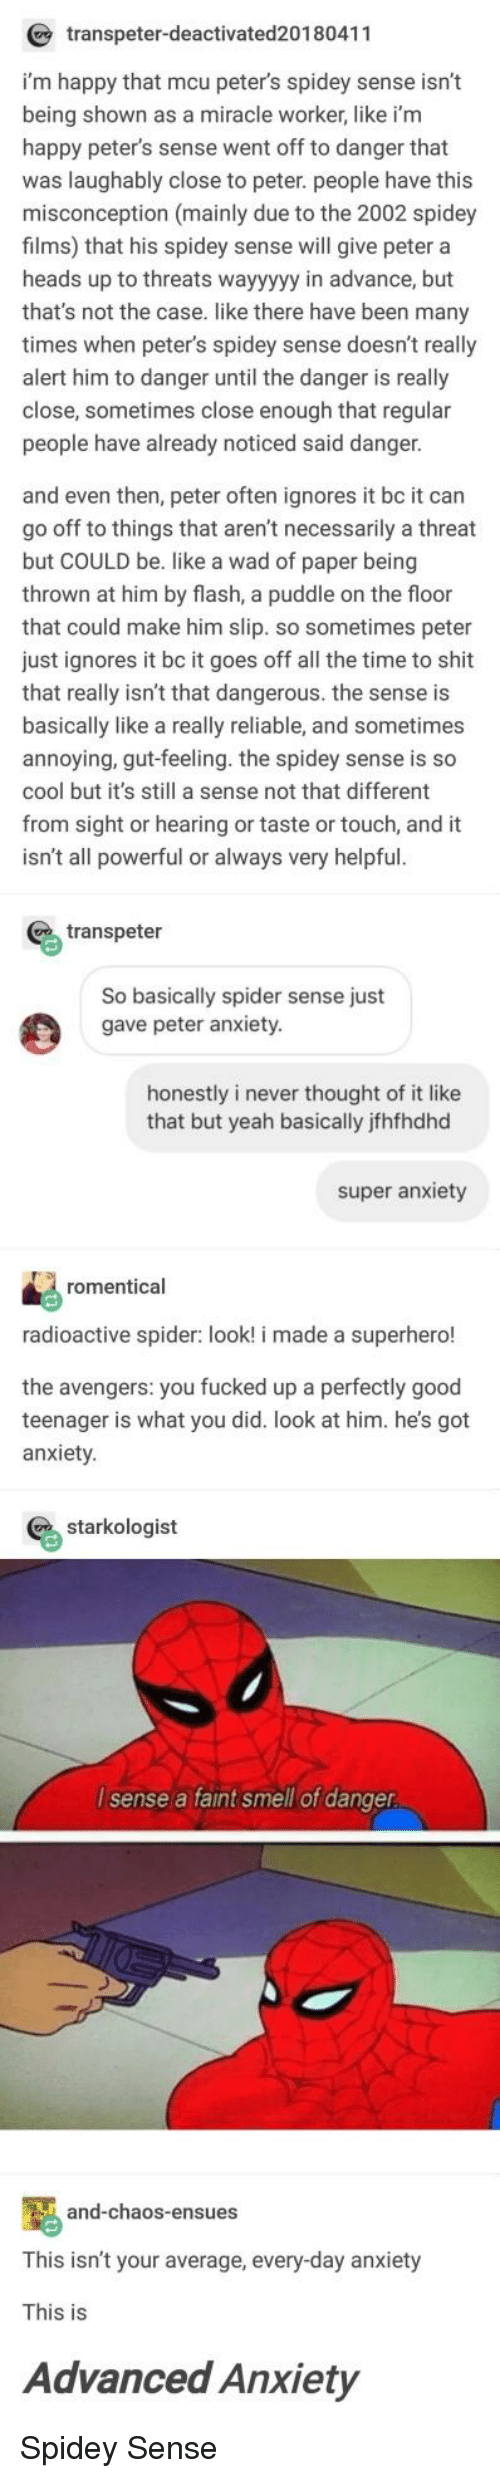 Be Like, Shit, and Smell: transpeter-deactivated20180411  i'm happy that mcu peter's spidey sense isn't  being shown as a miracle worker, like i'm  happy peter's sense went off to danger that  was laughably close to peter. people have this  misconception (mainly due to the 2002 spidey  films) that his spidey sense will give peter a  heads up to threats wayyyyy in advance, but  that's not the case. like there have been many  times when peter's spidey sense doesn't really  alert him to danger until the danger is really  close, sometimes close enough that regular  people have already noticed said danger.  and even then, peter often ignores it bc it can  go off to things that aren't necessarily a threat  but COULD be. like a wad of paper being  thrown at him by flash, a puddle on the floor  that could make him slip. so sometimes peter  just ignores it bc it goes off all the time to shit  that really isn't that dangerous. the sense is  basically like a really reliable, and sometimes  annoying, gut-feeling. the spidey sense is so  cool but it's still a sense not that different  from sight or hearing or taste or touch, and it  isn't all powerful or always very helpful  % transpeter  So basically spider sense just  gave peter anxiety.  honestly i never thought of it like  that but yeah basically jfhfhdhd  super anxiety  romentical  radioactive spider: look! i made a superhero!  the avengers: you fucked up a perfectly good  teenager is what you did. look at him. he's got  anxiety  % starkologist  I sense a faint smell of danger  and-chaos-ensues  This isn't your average, every-day anxiety  This is  Advanced Anxiety Spidey Sense